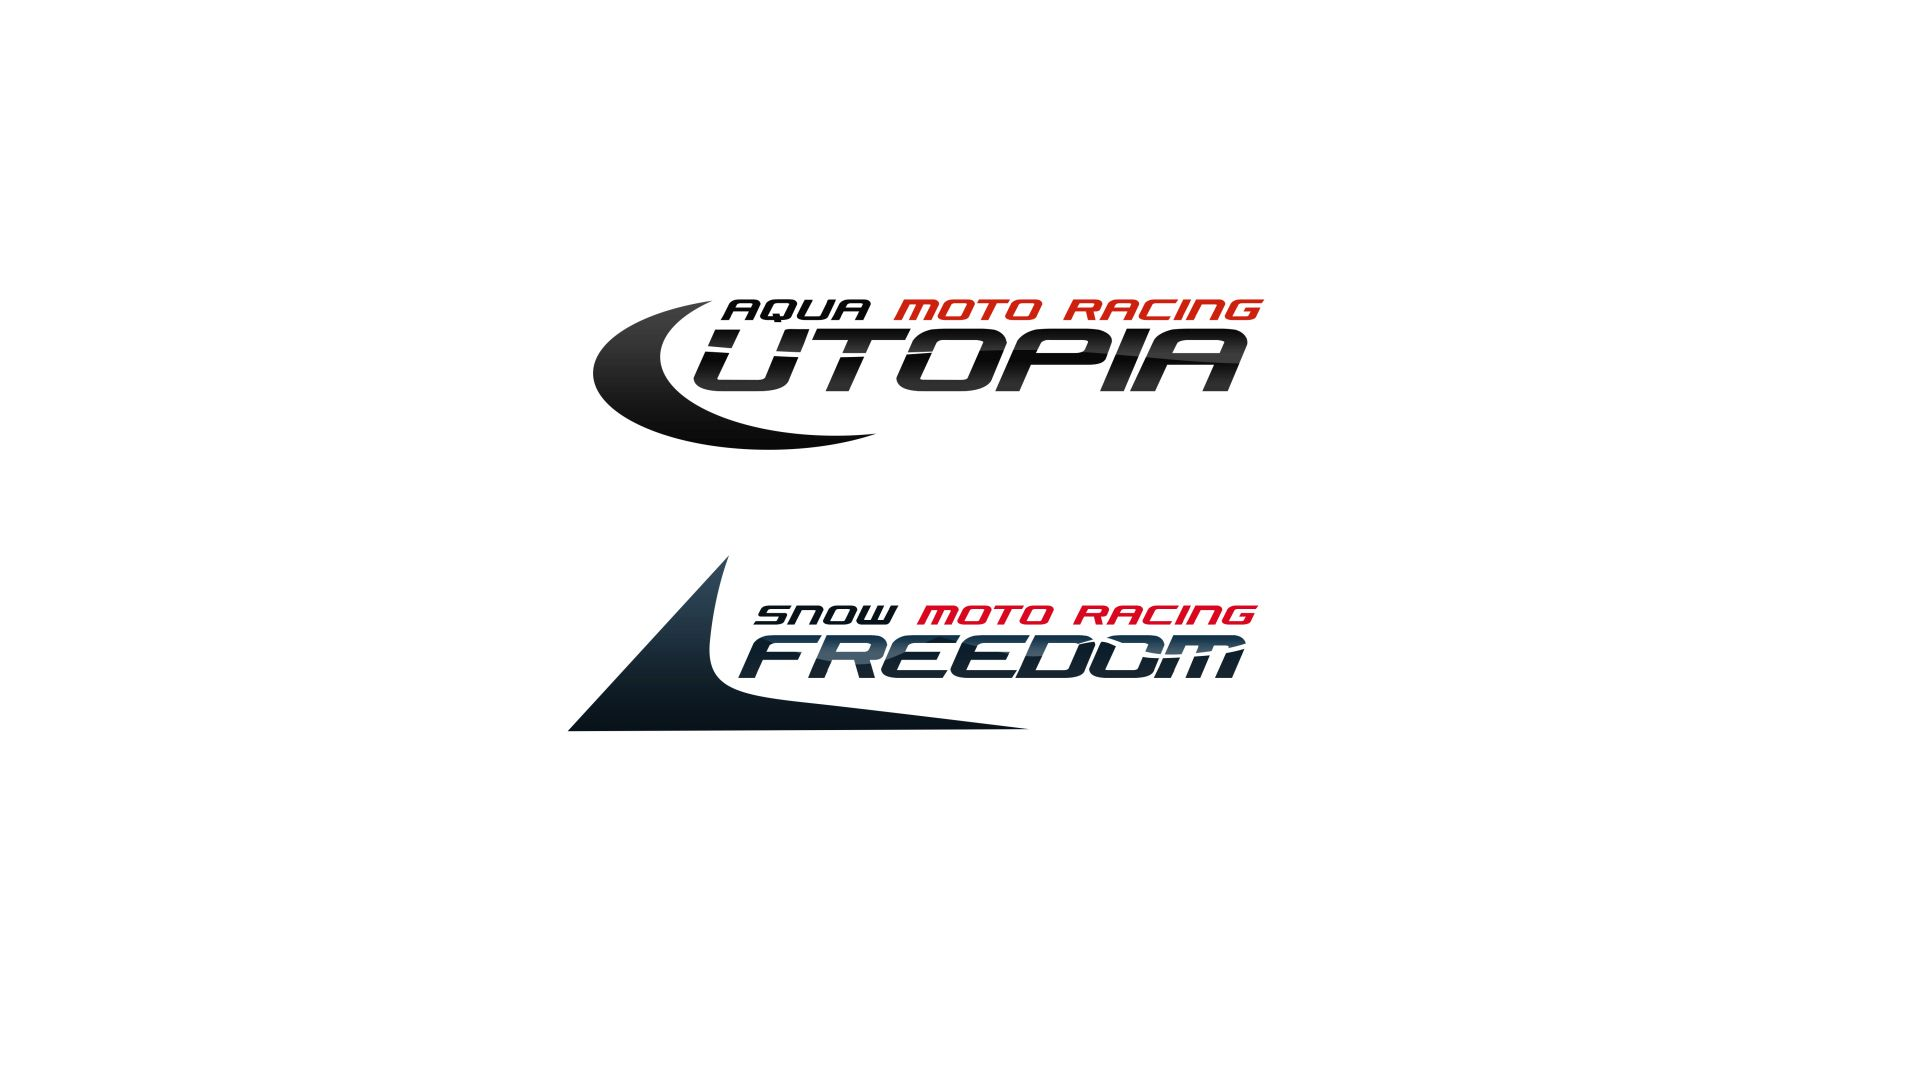 Aqua Moto Racing Utopia Snow Moto Racing Freedom